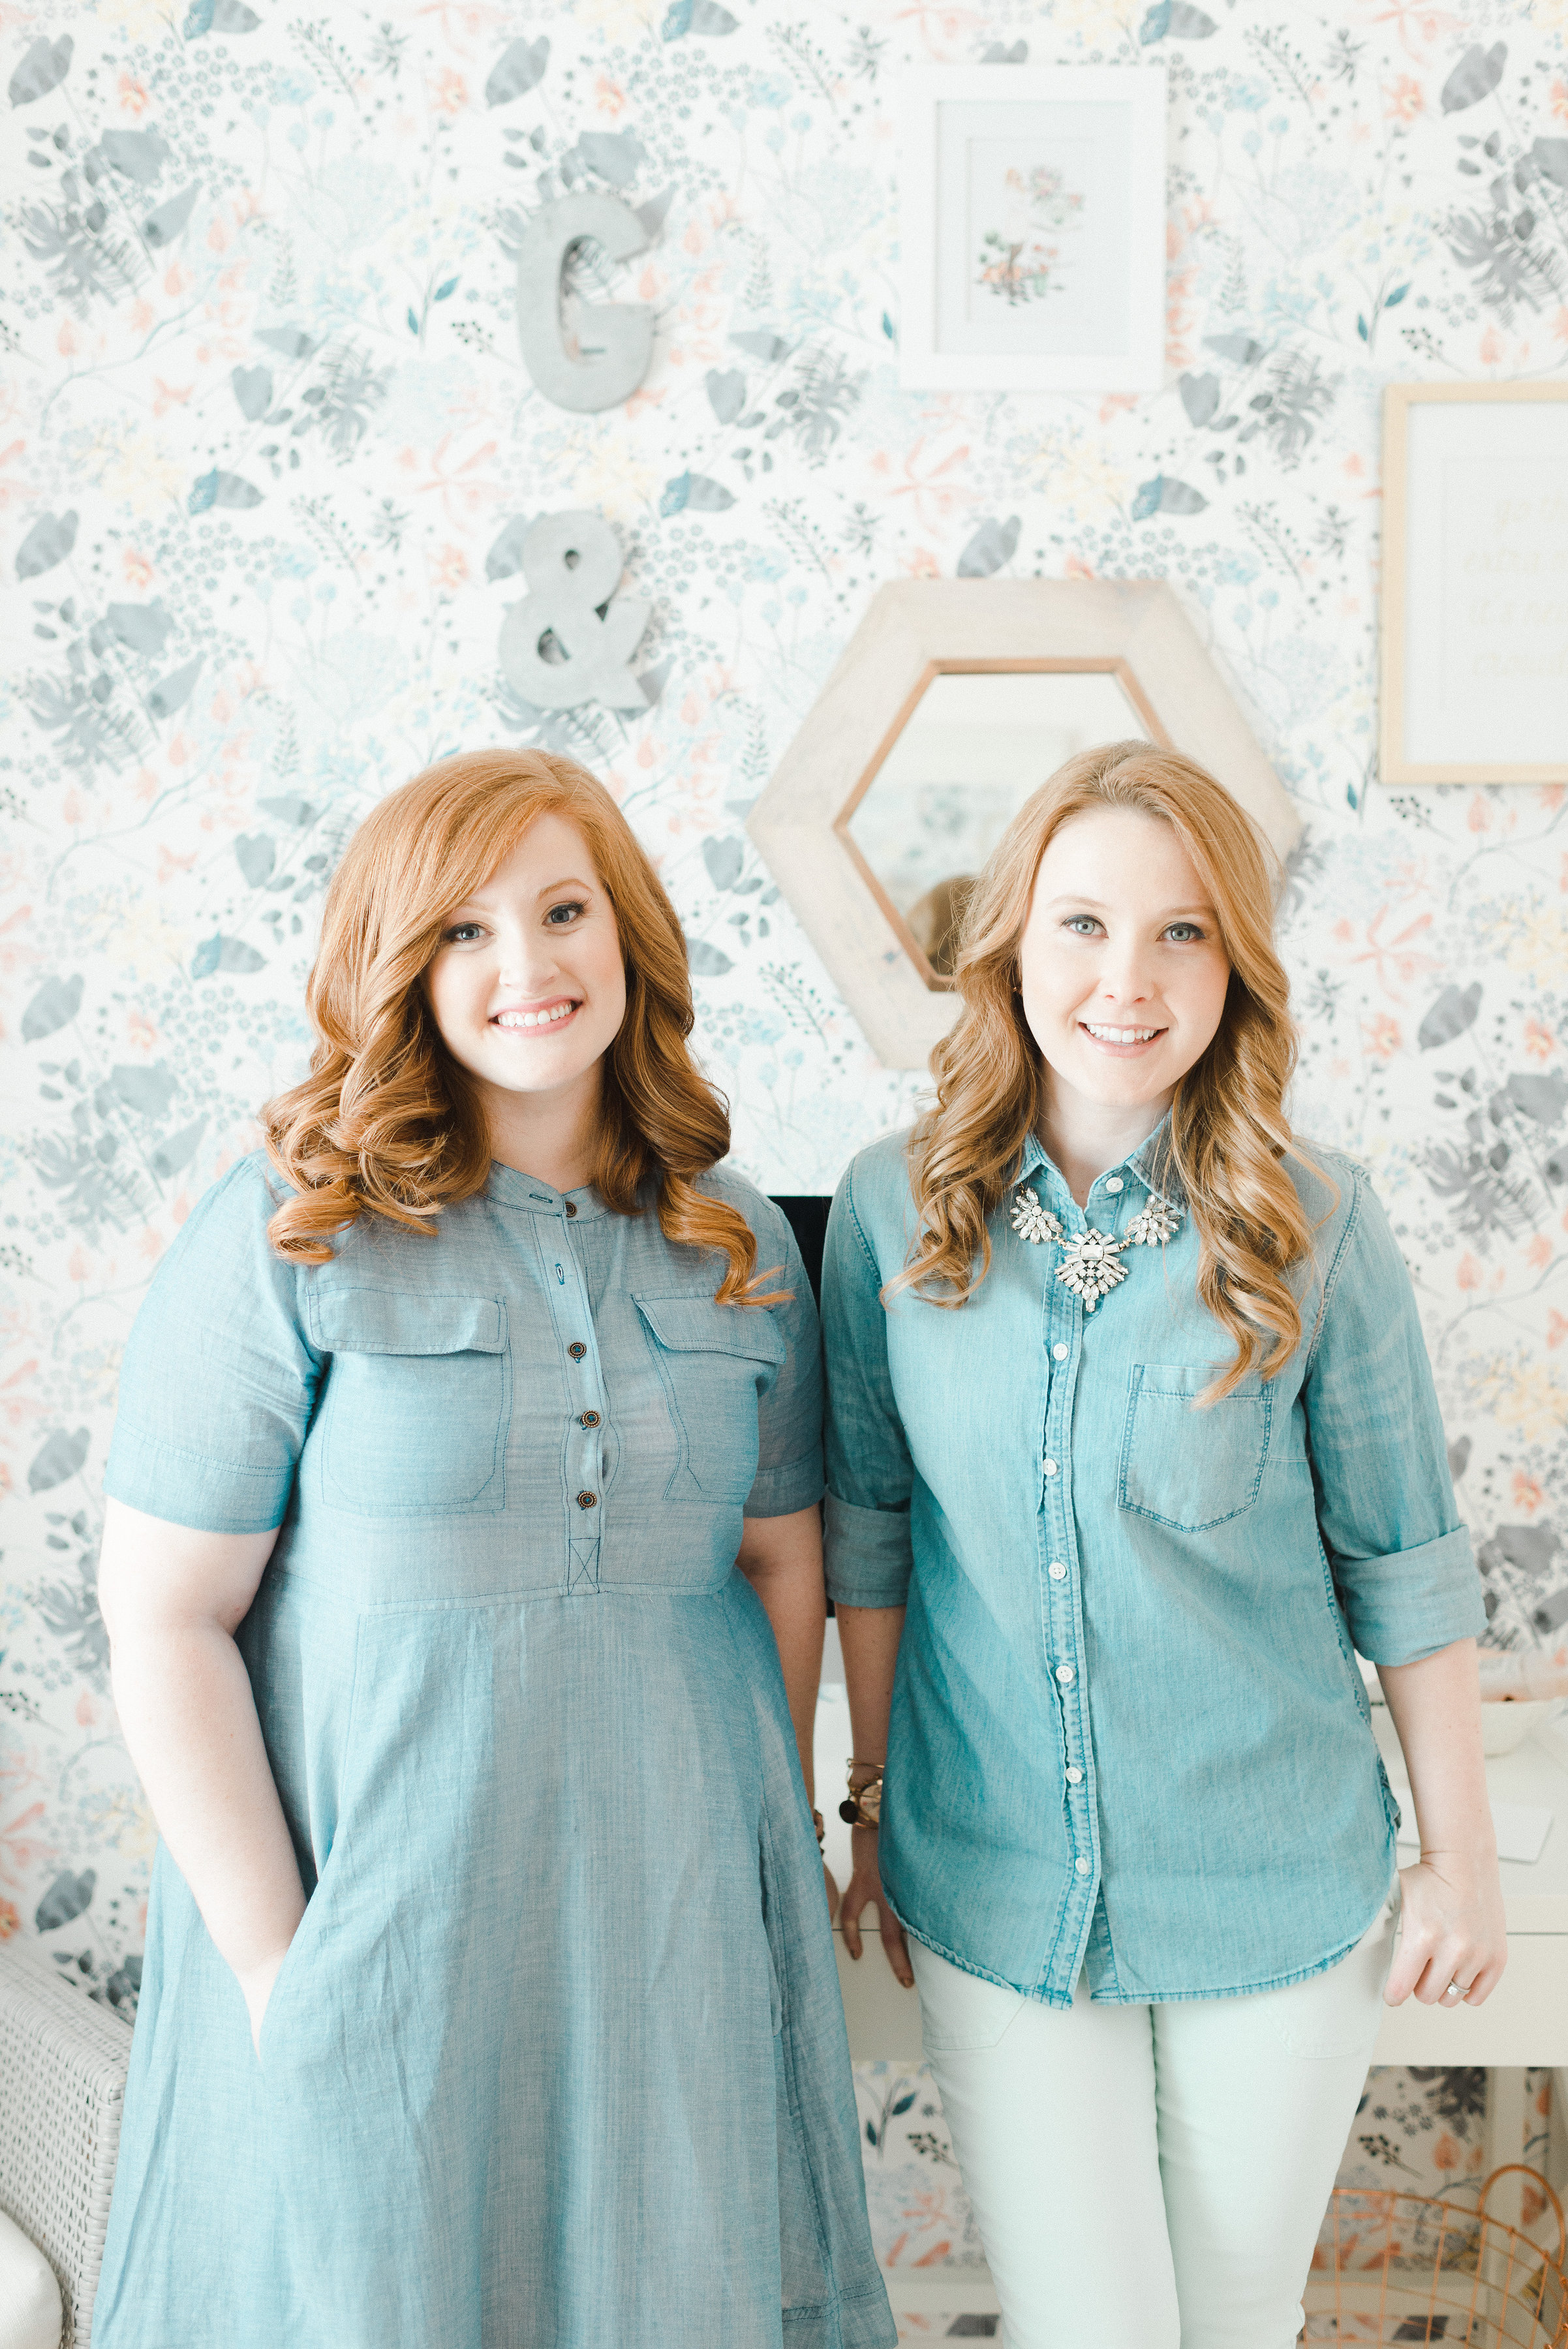 HELLO     We are Lauren & Alyssa. Two gingers who LOVE weddings & blooms. We've joined forces to offer the most cohesive wedding design and planning experience that ensures a couple's wedding day is not only gorgeous, but is a true reflection of their unique love story. We are gingers after all, we have unique and gorgeous under control ;)